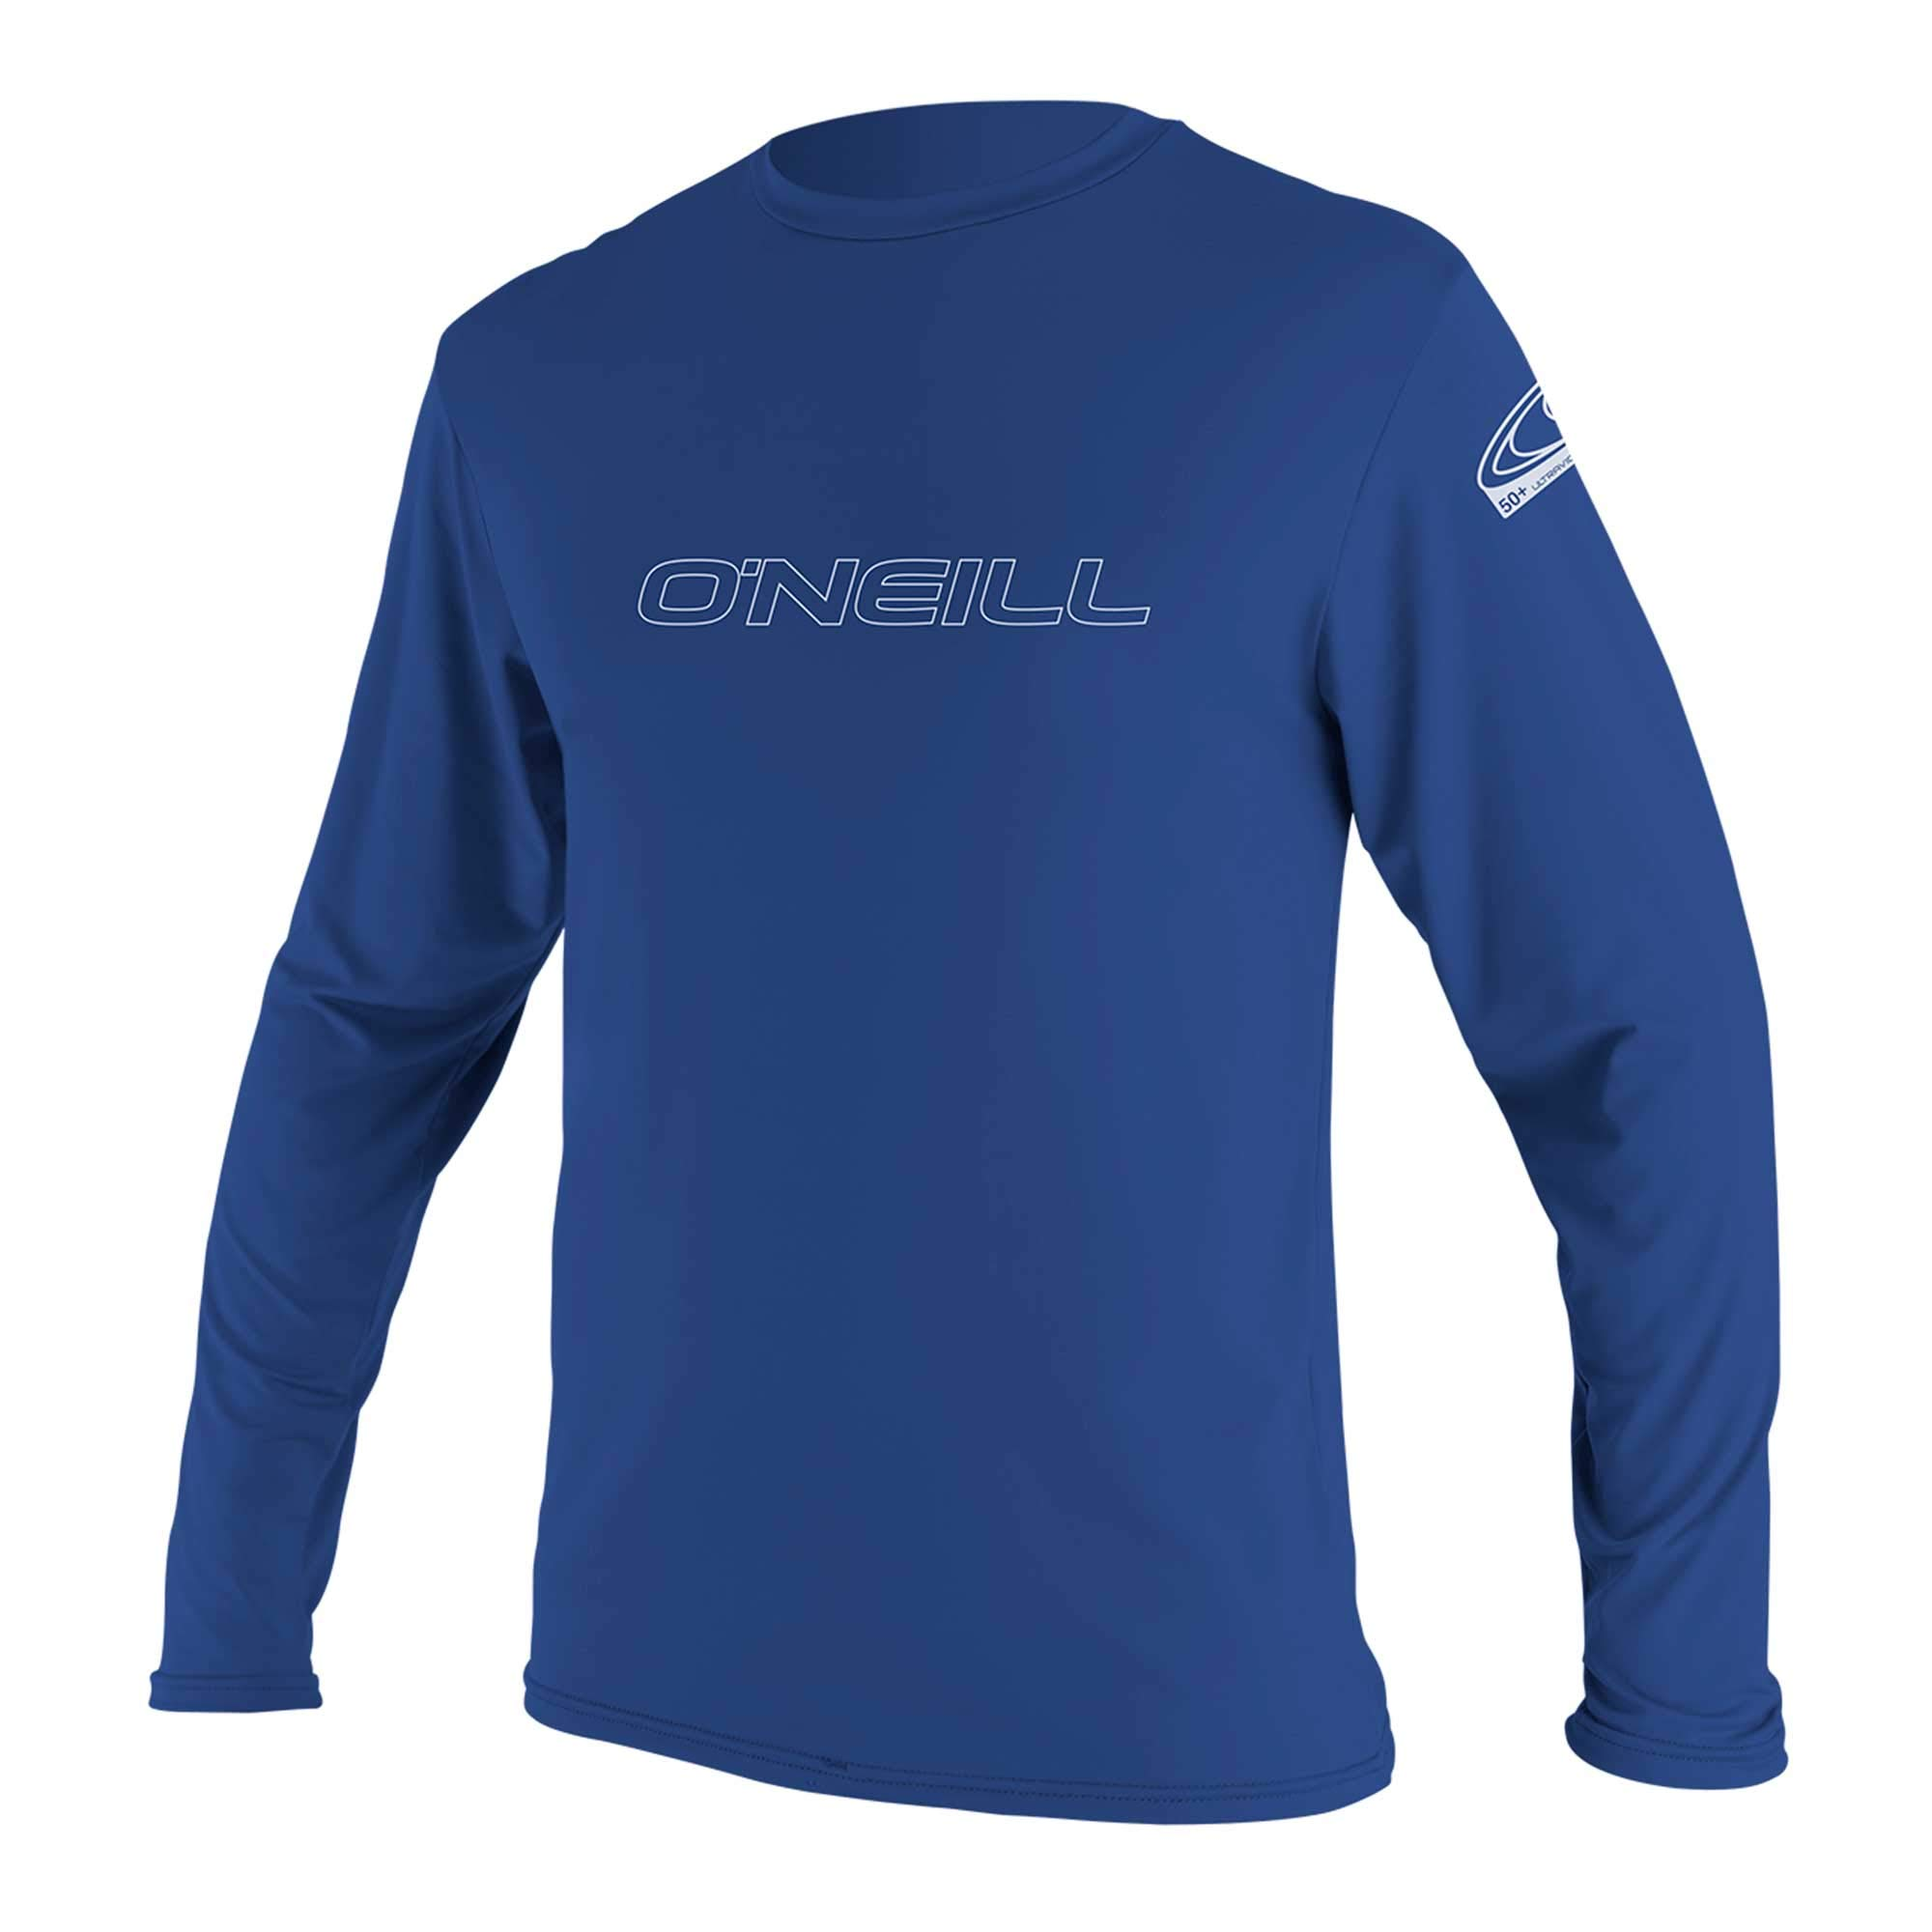 O'Neill Wetsuits Wetsuits UV Sun Protection Mens Basic Skins Long Sleeve Tee Sun Shirt Rash Guard, Pacific, X-Large by O'Neill Wetsuits